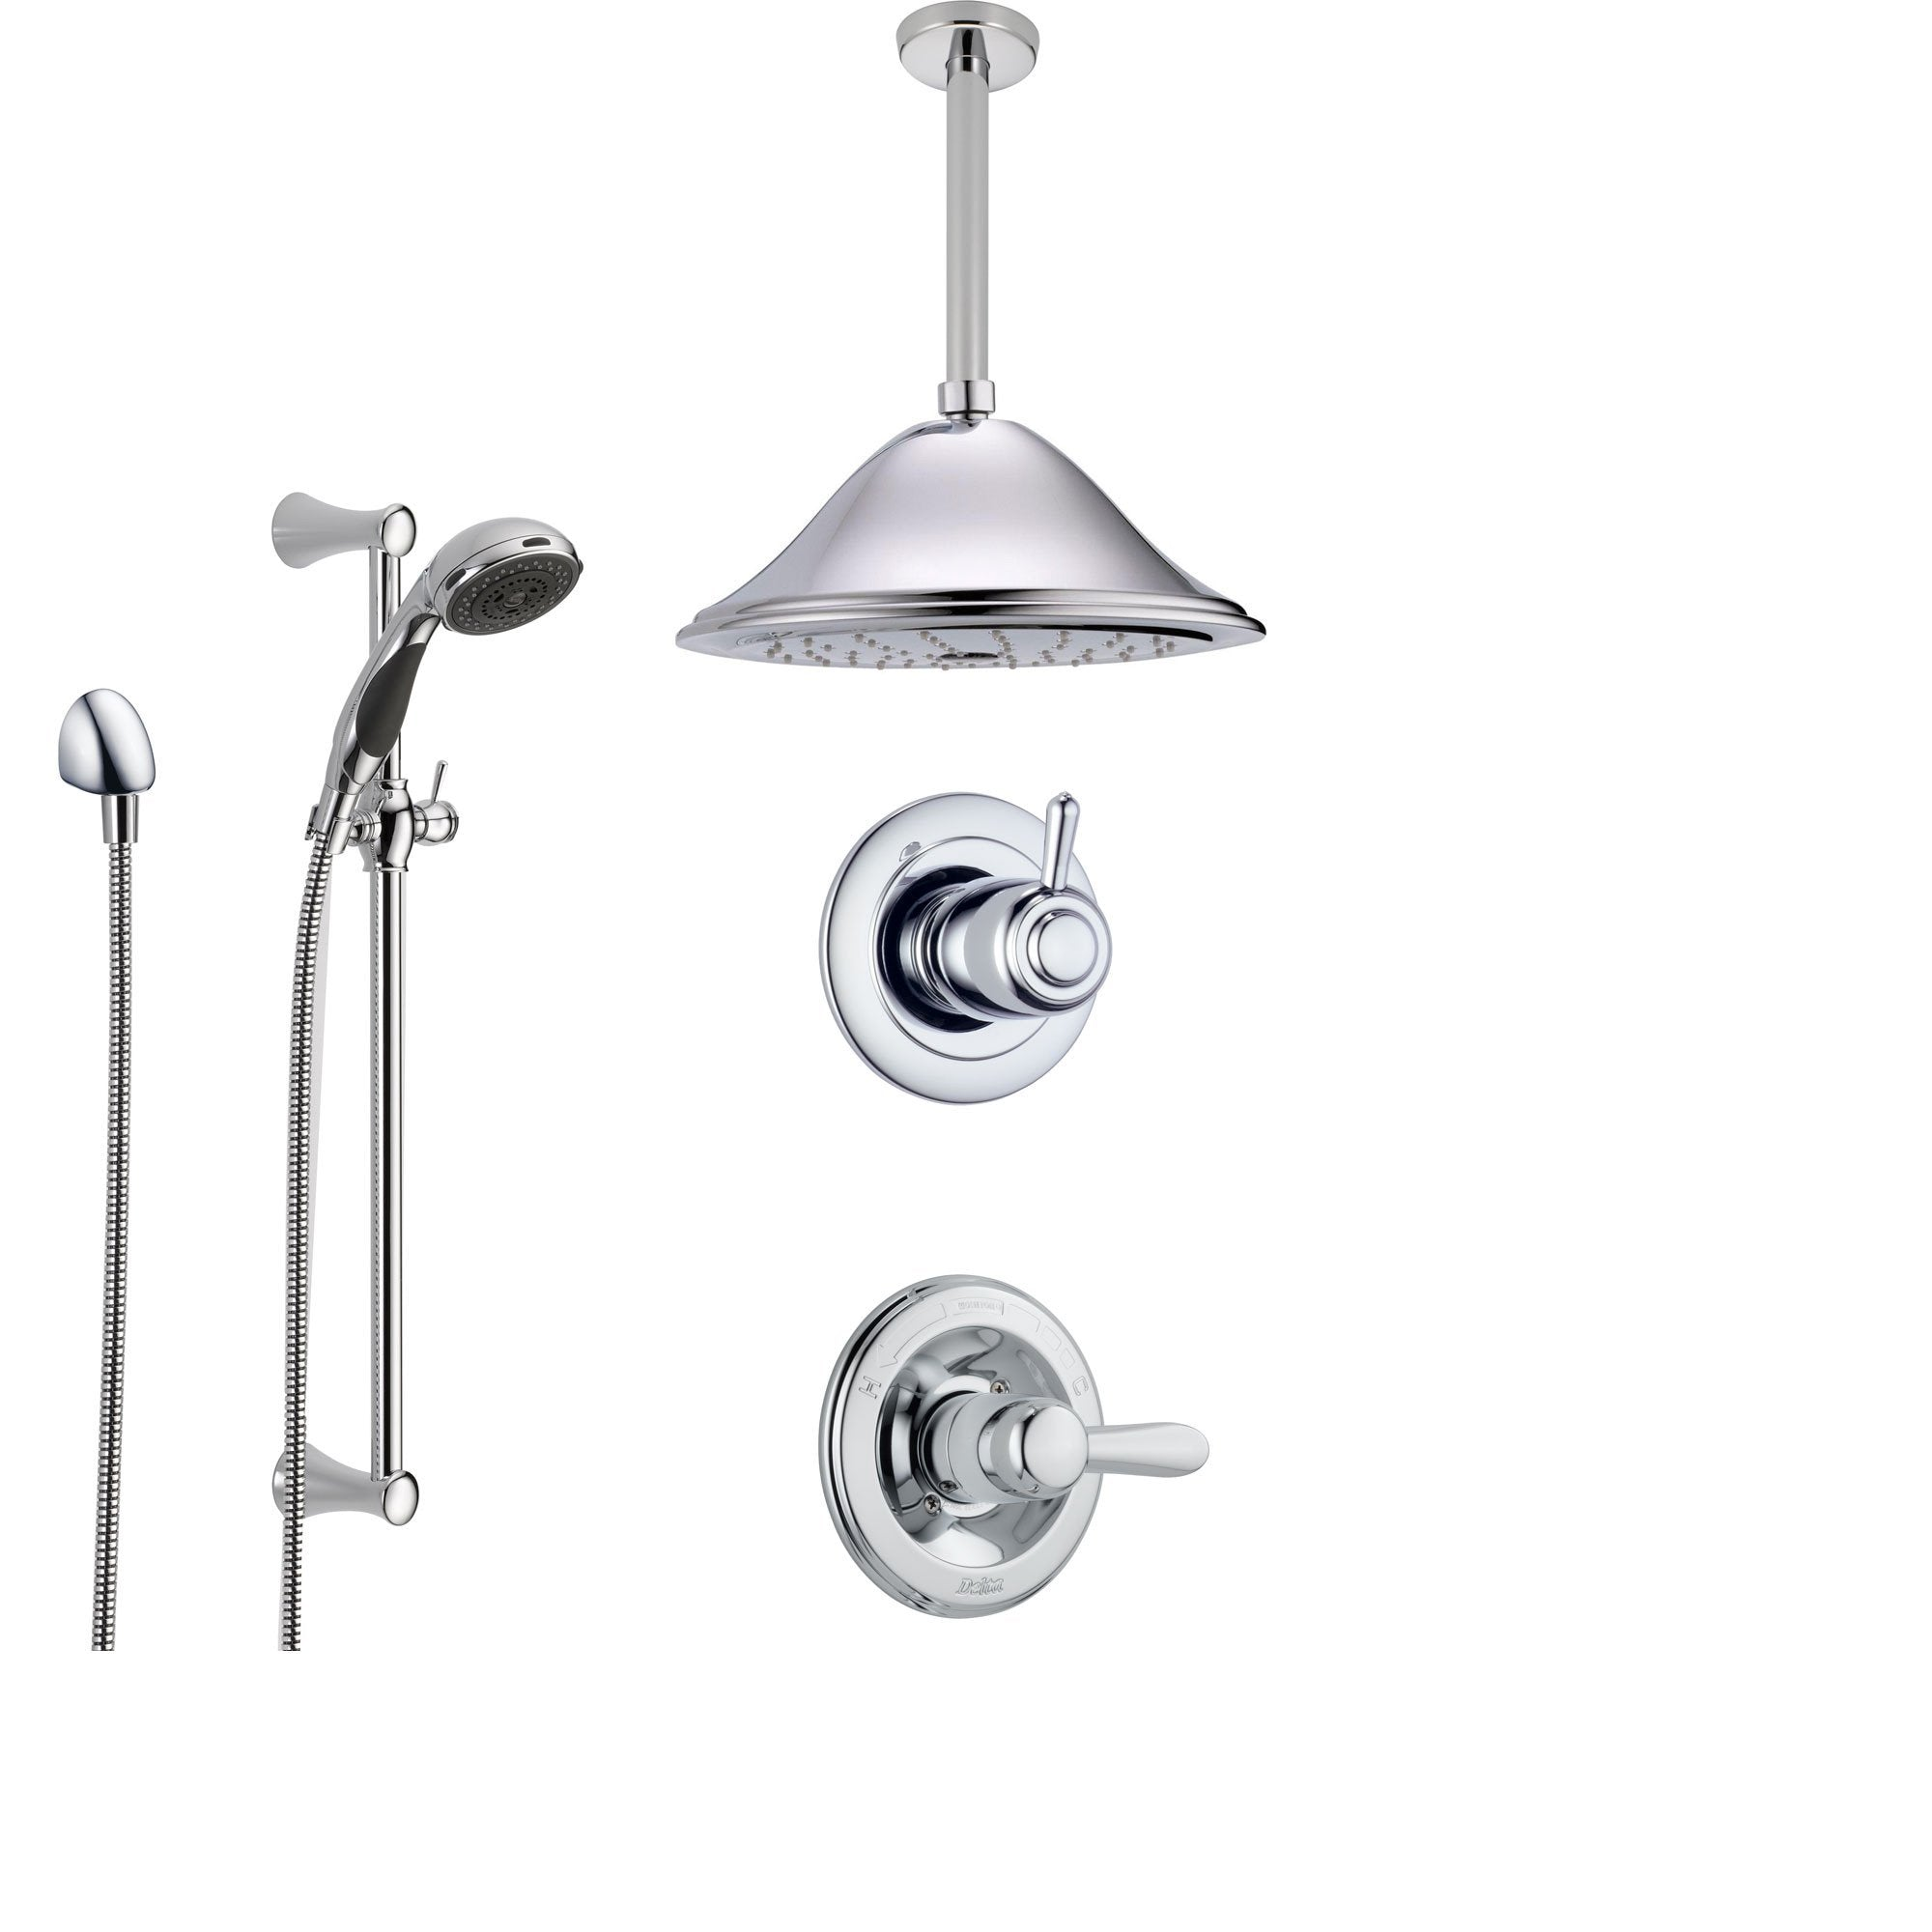 Delta Lahara Chrome Shower System with Normal Shower Handle, 3-setting Diverter, Large Ceiling Mount Rain Showerhead, and Handheld Shower SS143882